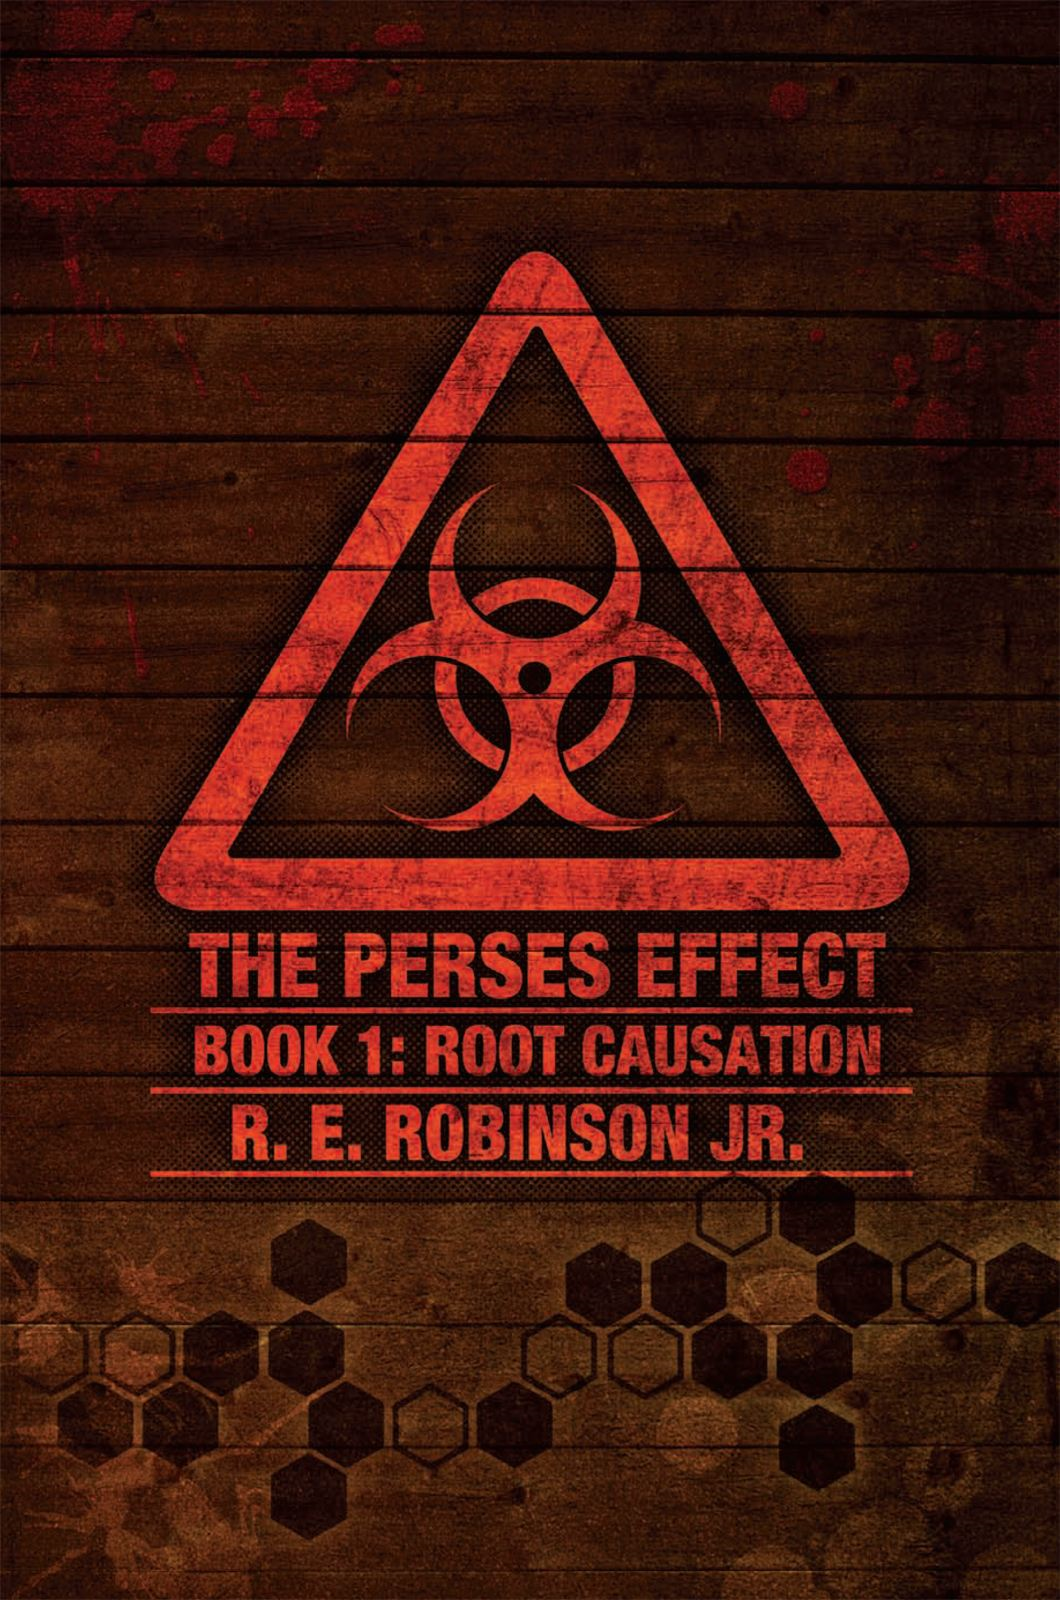 The Perses Effect By: R.E.Robinson Jr.